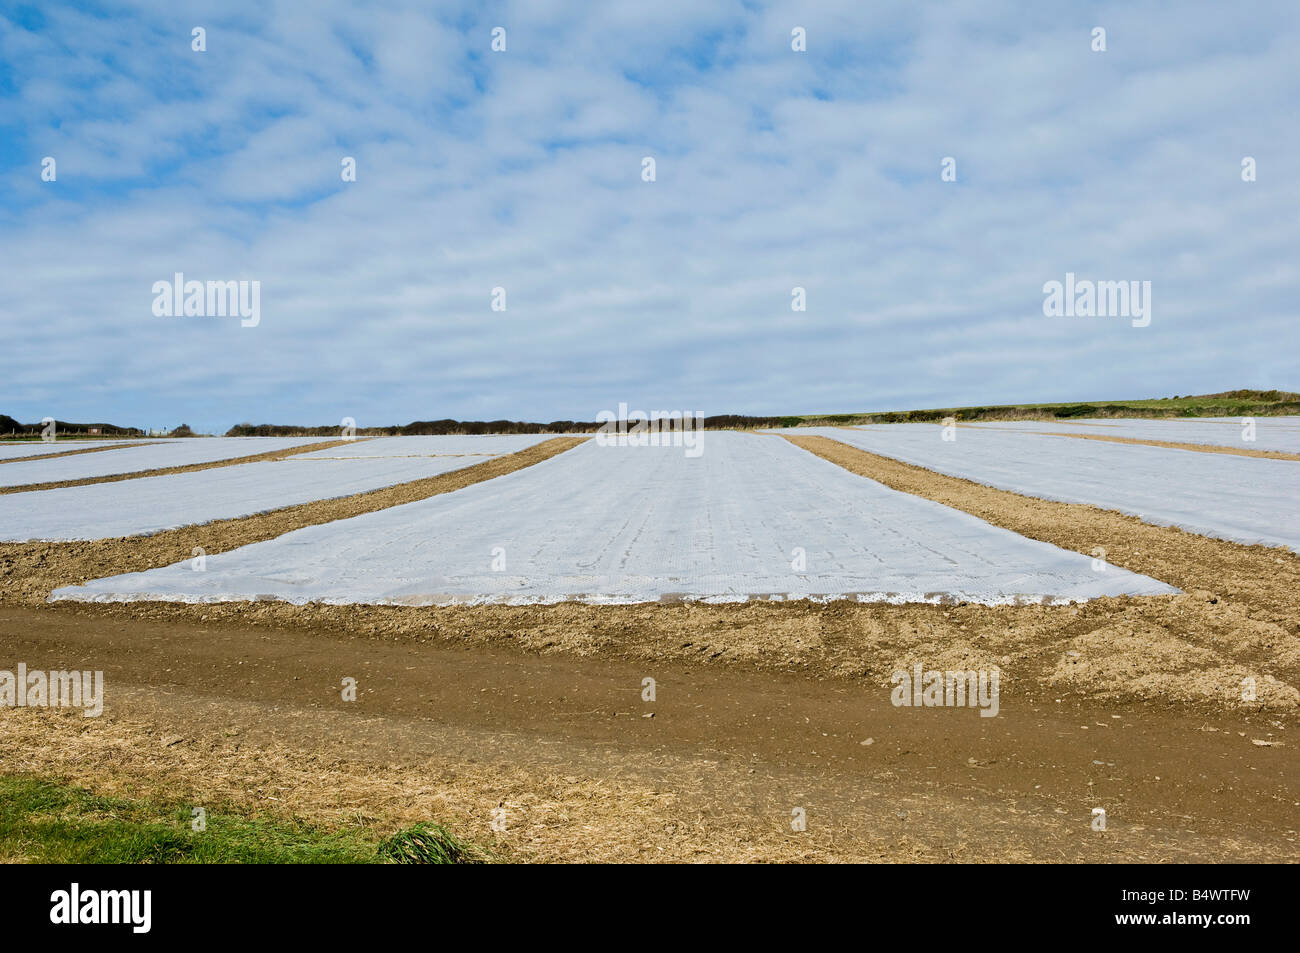 Plastic covered crop in field - Stock Image